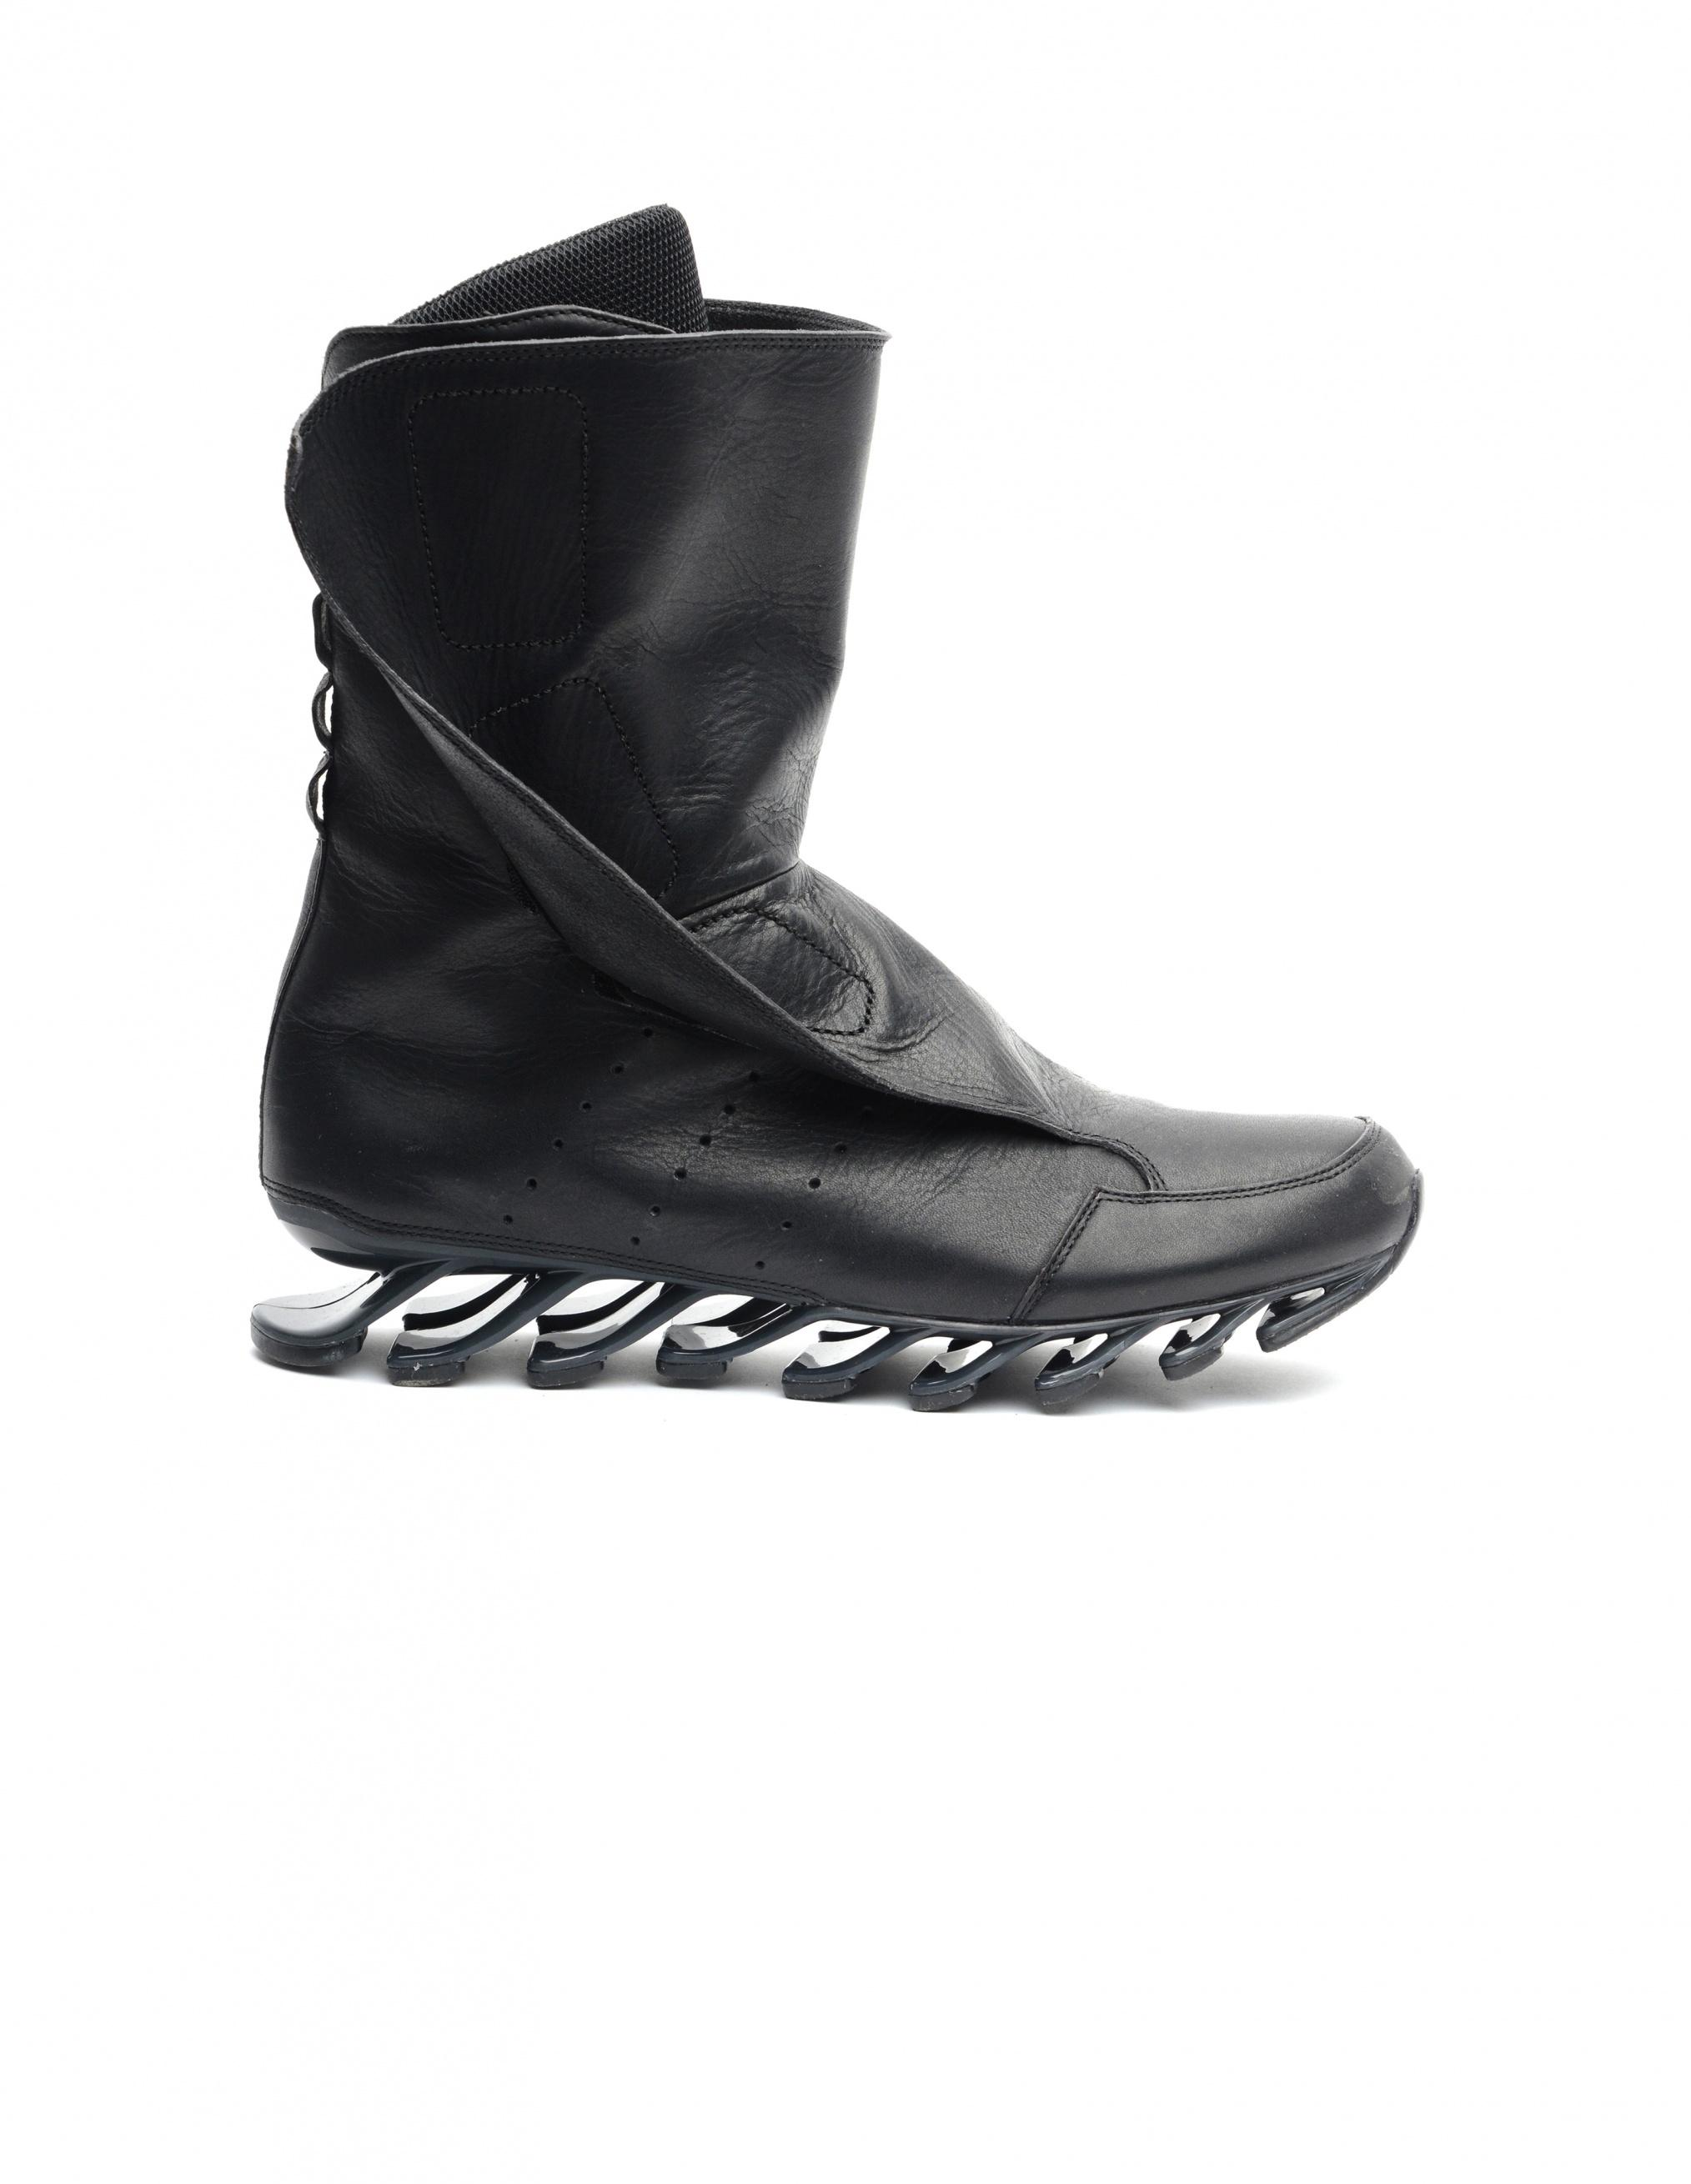 on sale 275b8 a9779 Adidas By Rick Owens Springblade Boots in Black